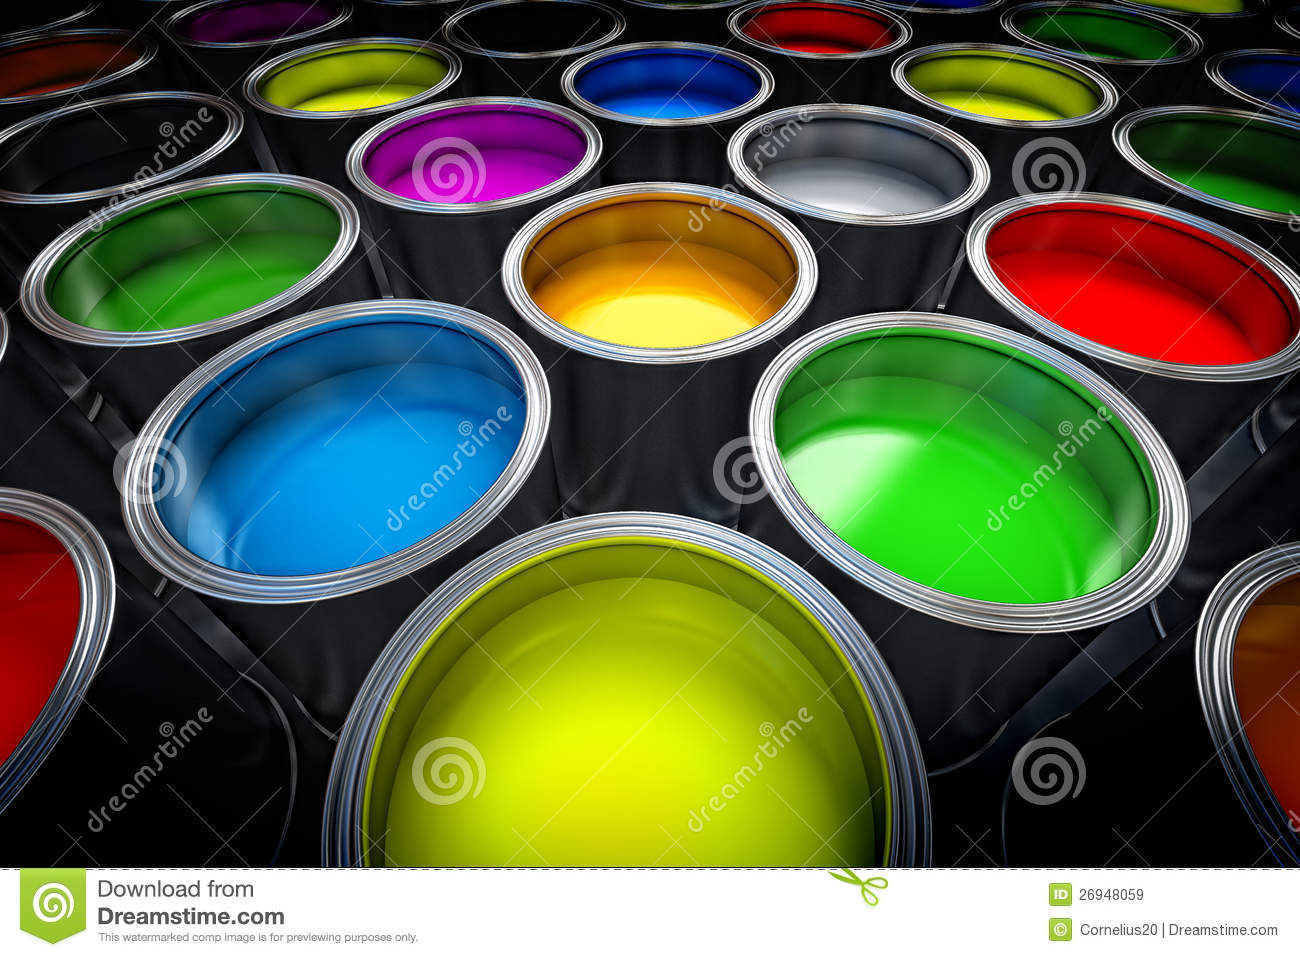 Paint cans royalty free stock images image 26948059 for Free photo paint